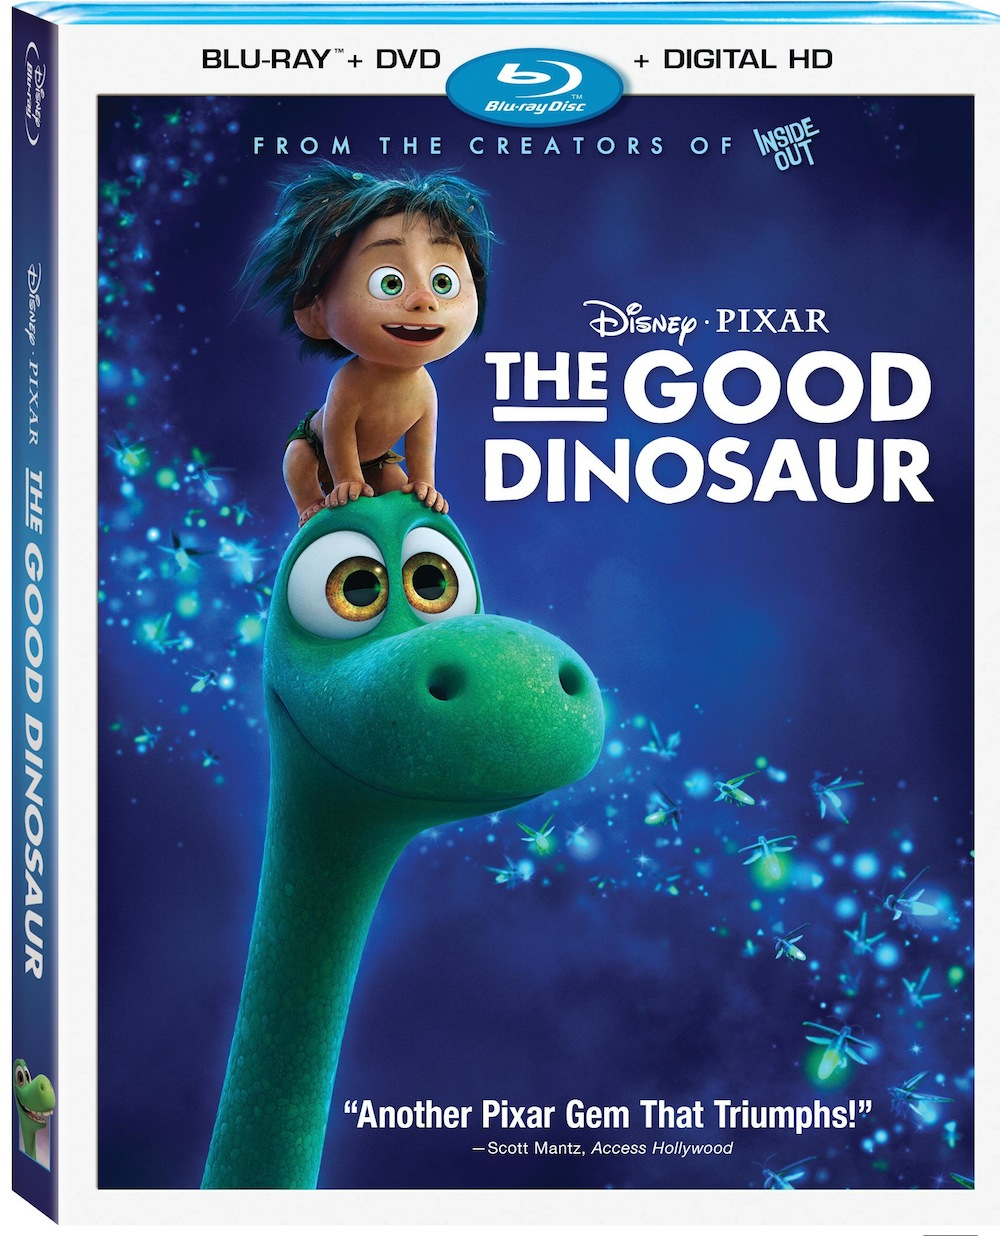 Disney/Pixar The Good Dinosaur on Home Video February 23